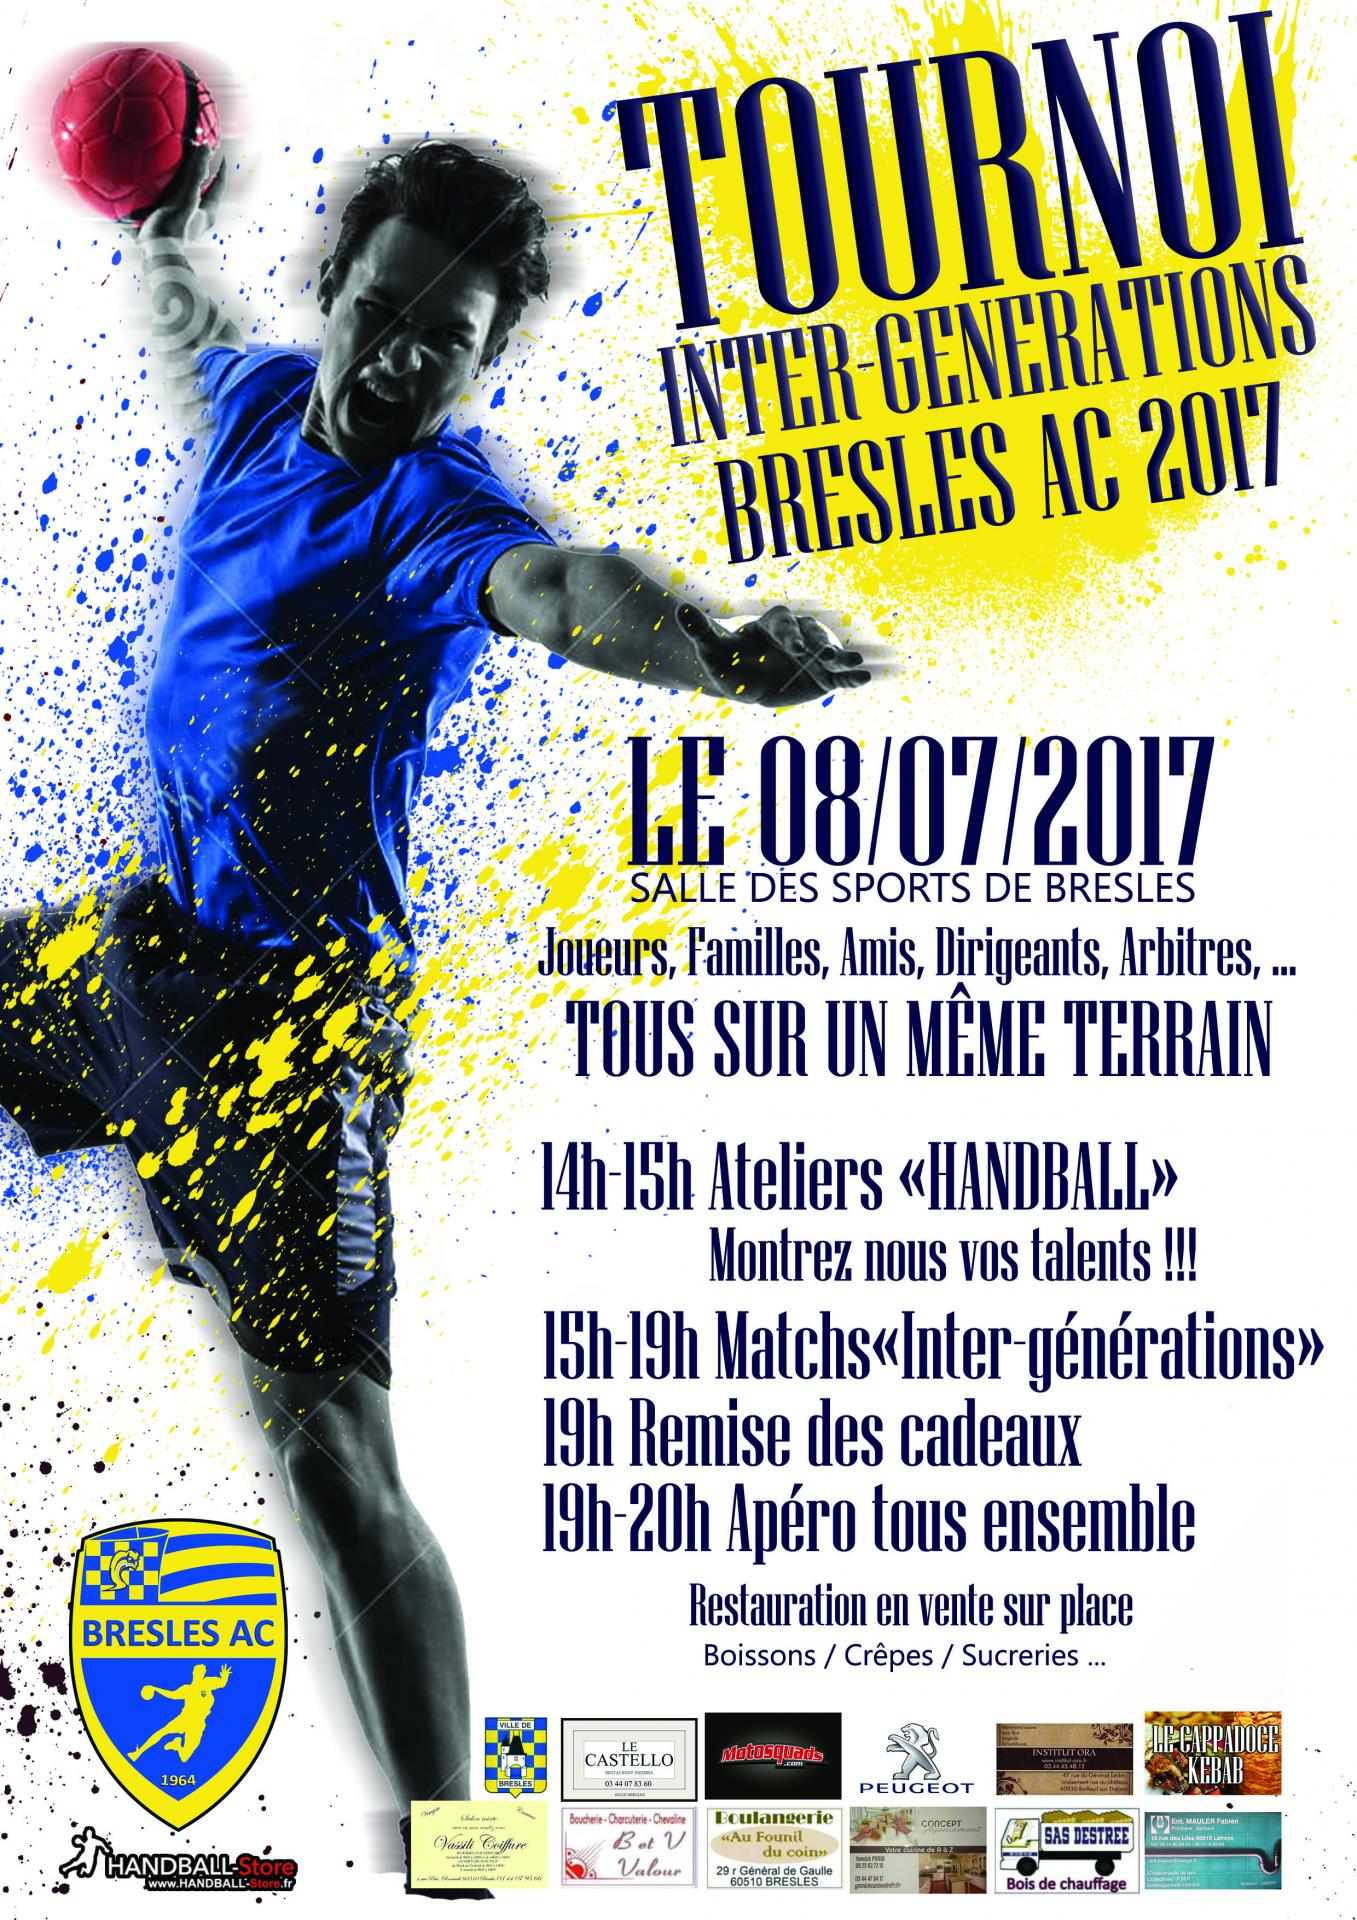 Tournoi intergenerations 2017